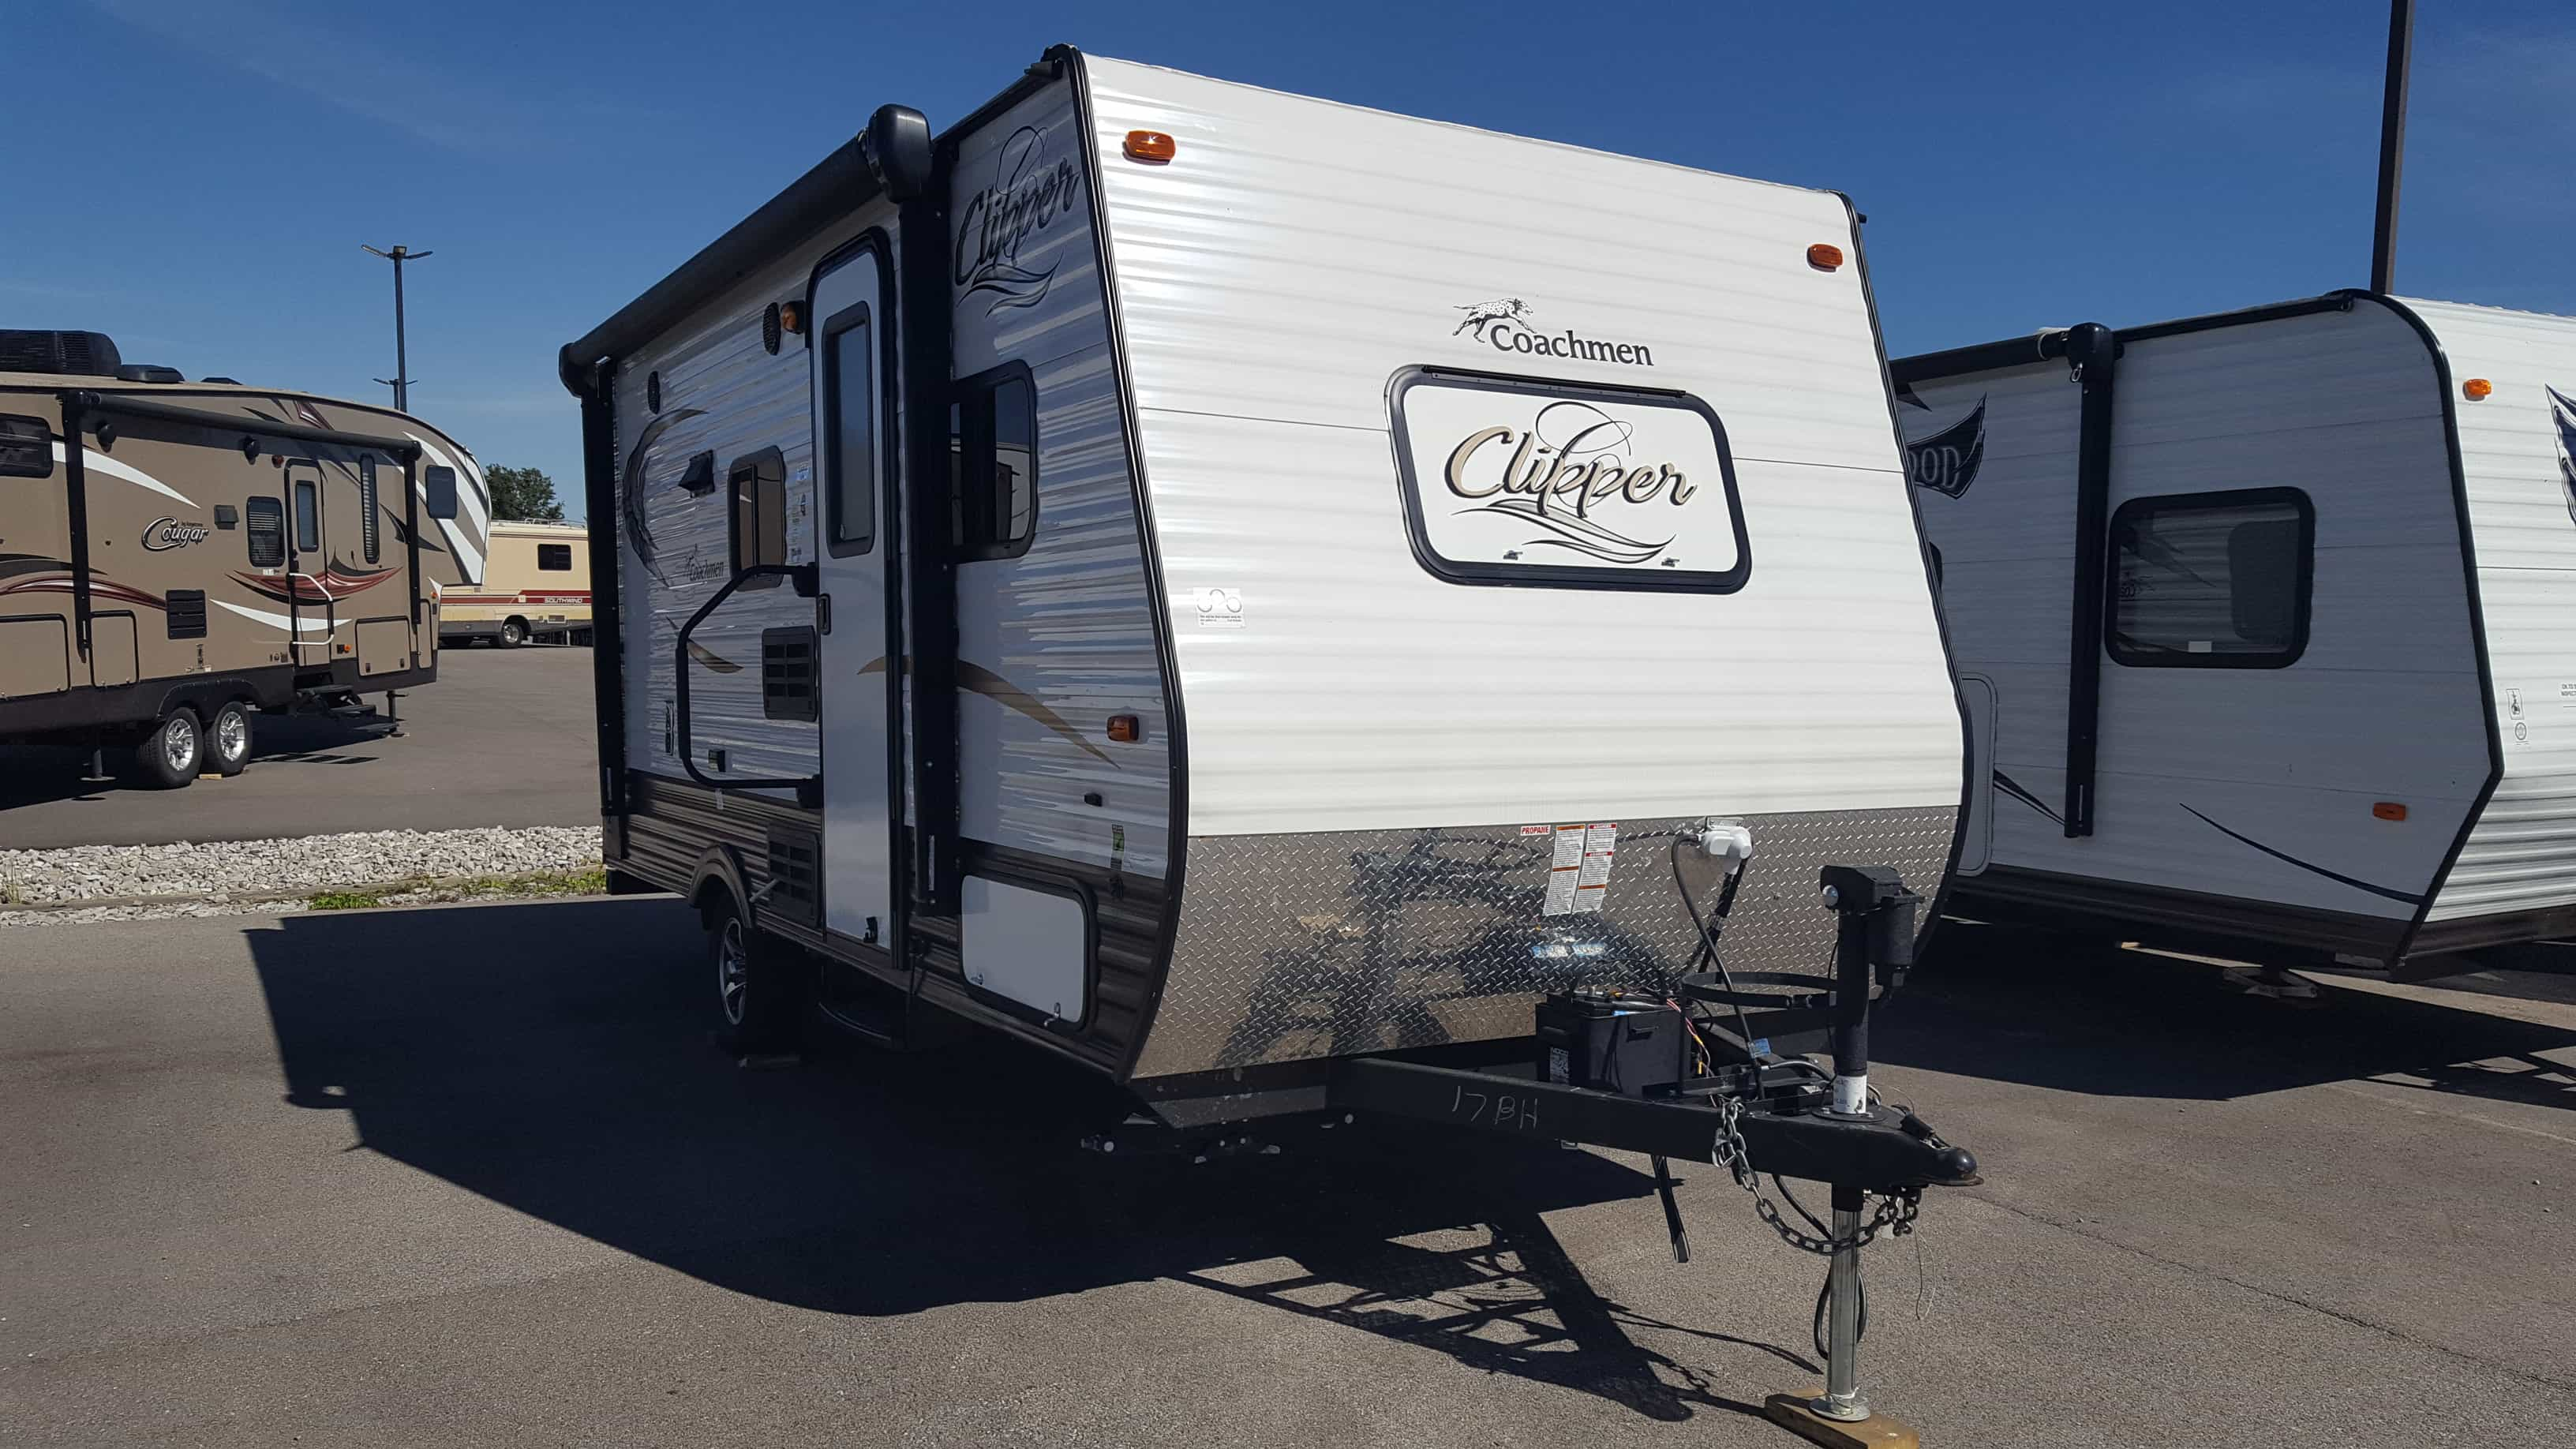 USED 2016 Coachmen CLIPPER 17BH - American RV